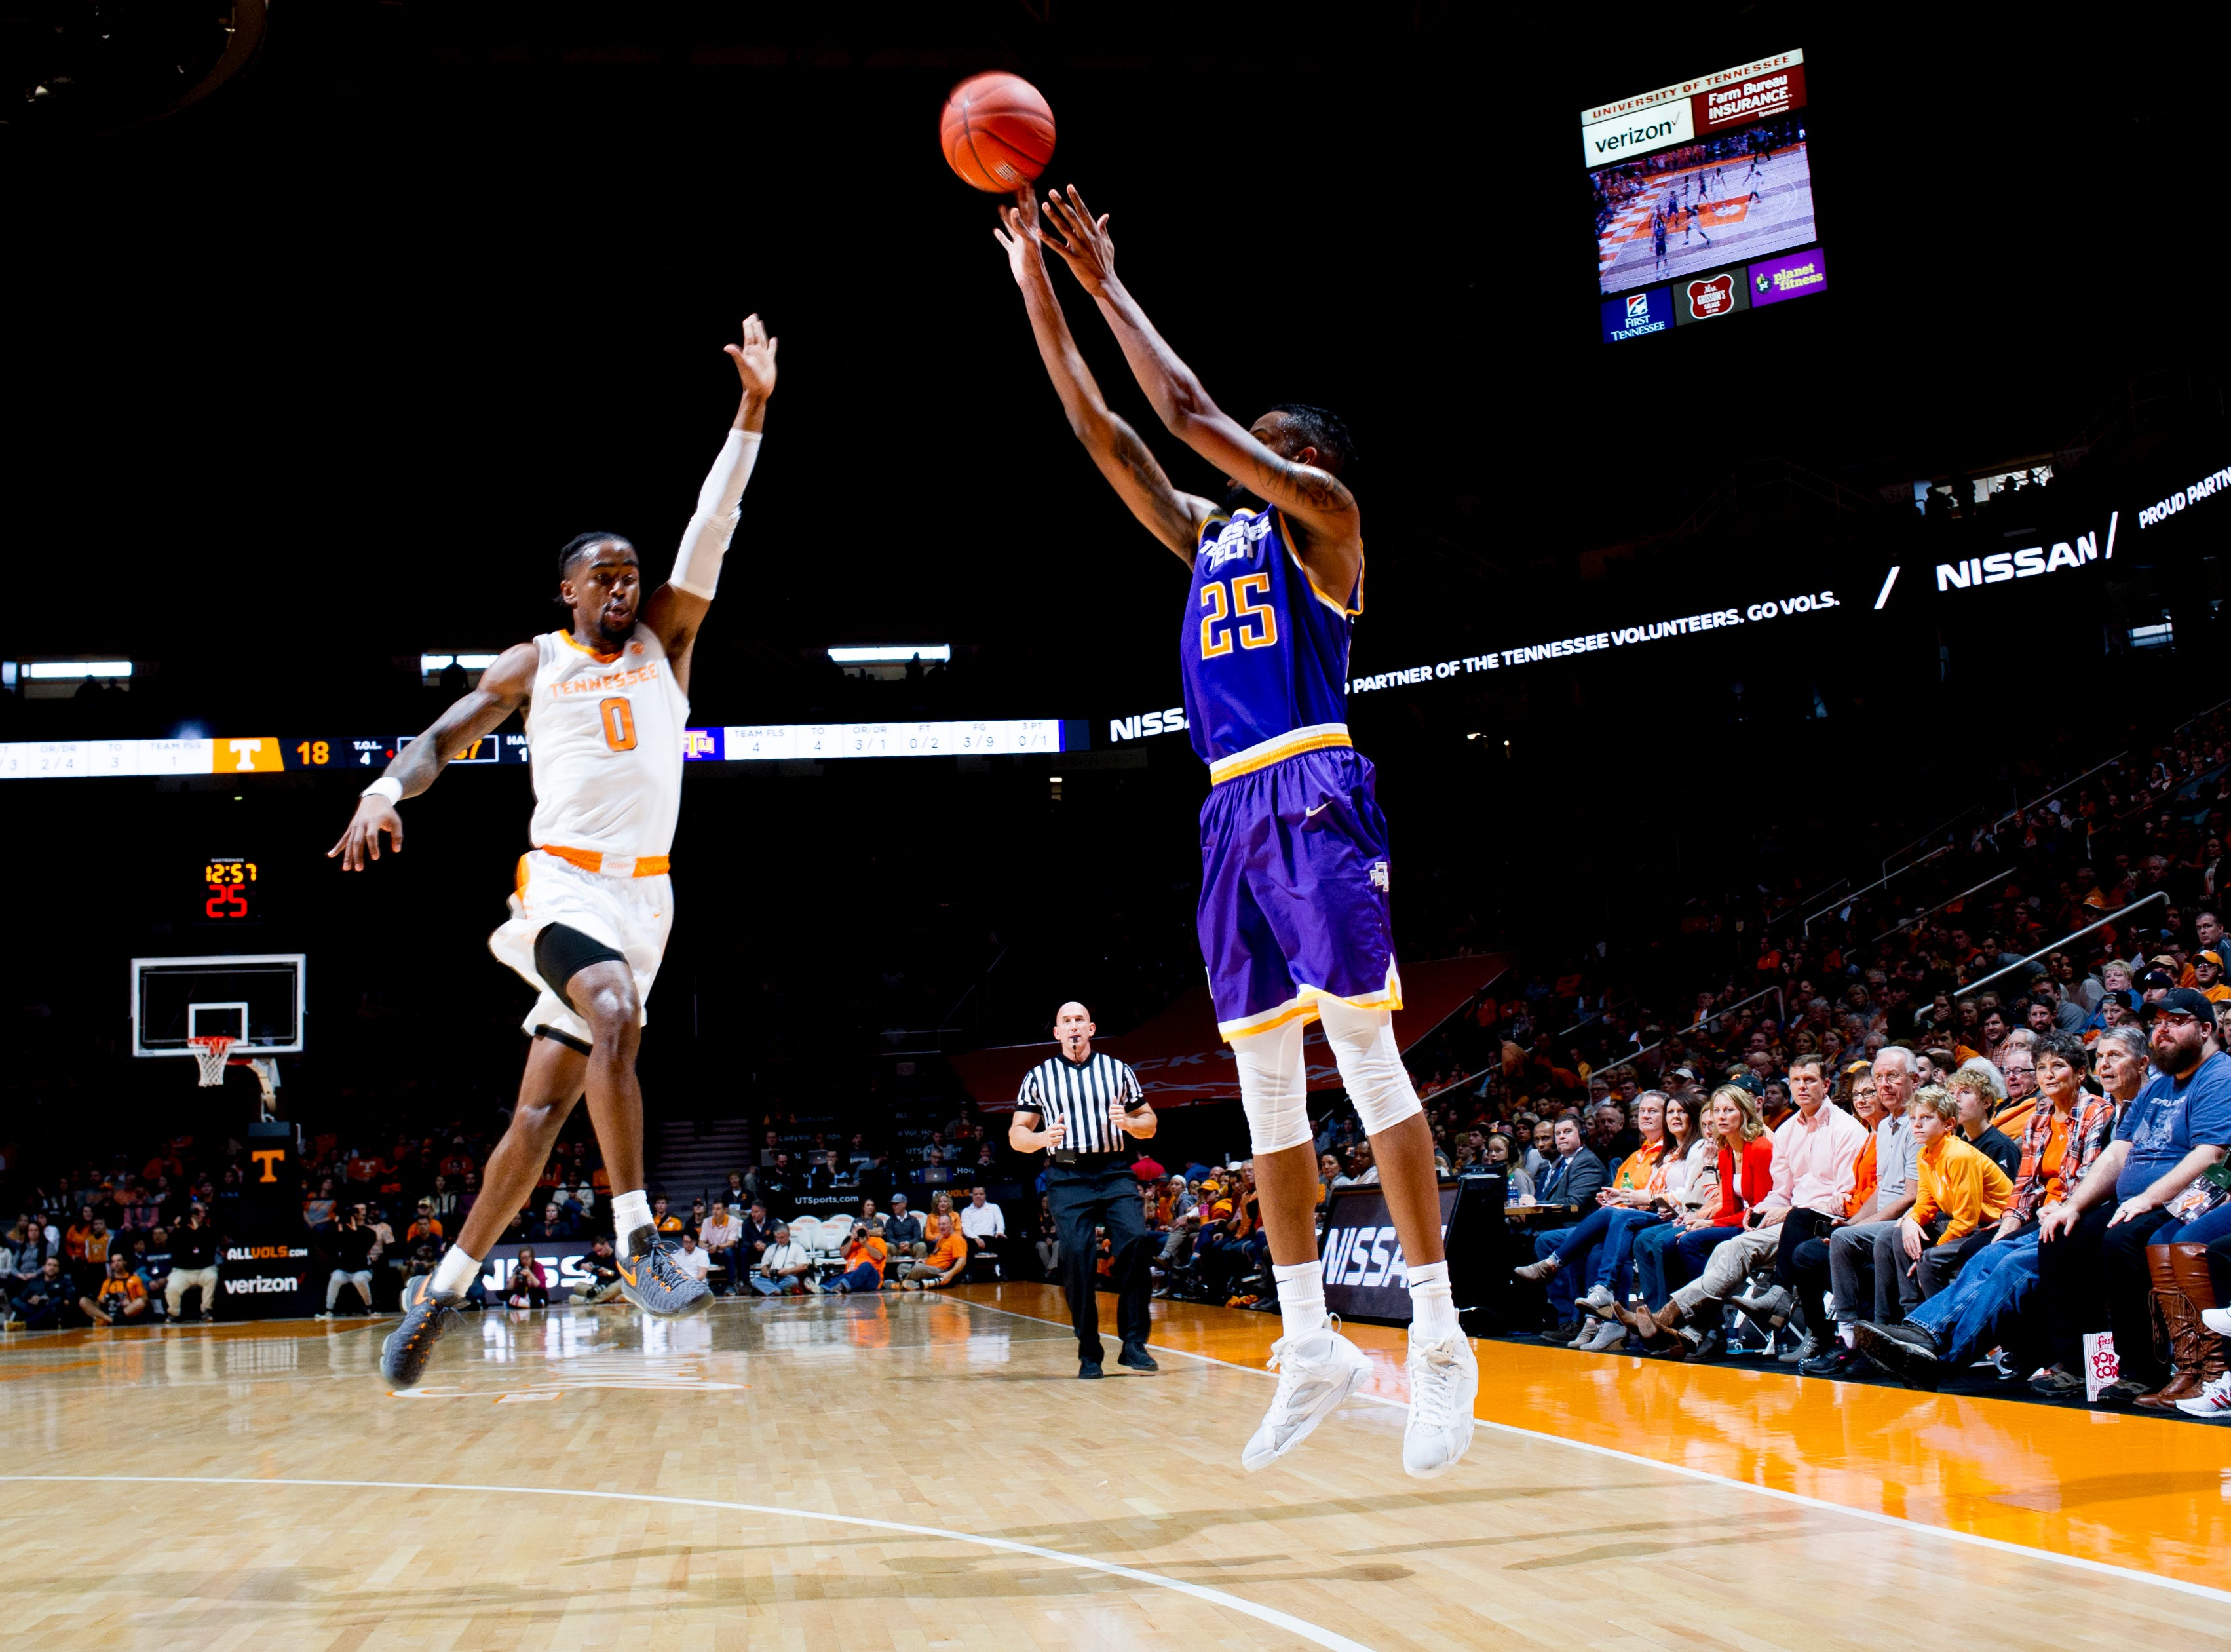 Tennessee Tech forward Malik Martin (25) shoots the ball as Tennessee guard Jordan Bone (0) defends during a game between Tennessee and Tennessee Tech at Thompson-Boling Arena in Knoxville, Tennessee on Saturday, December 29, 2018.